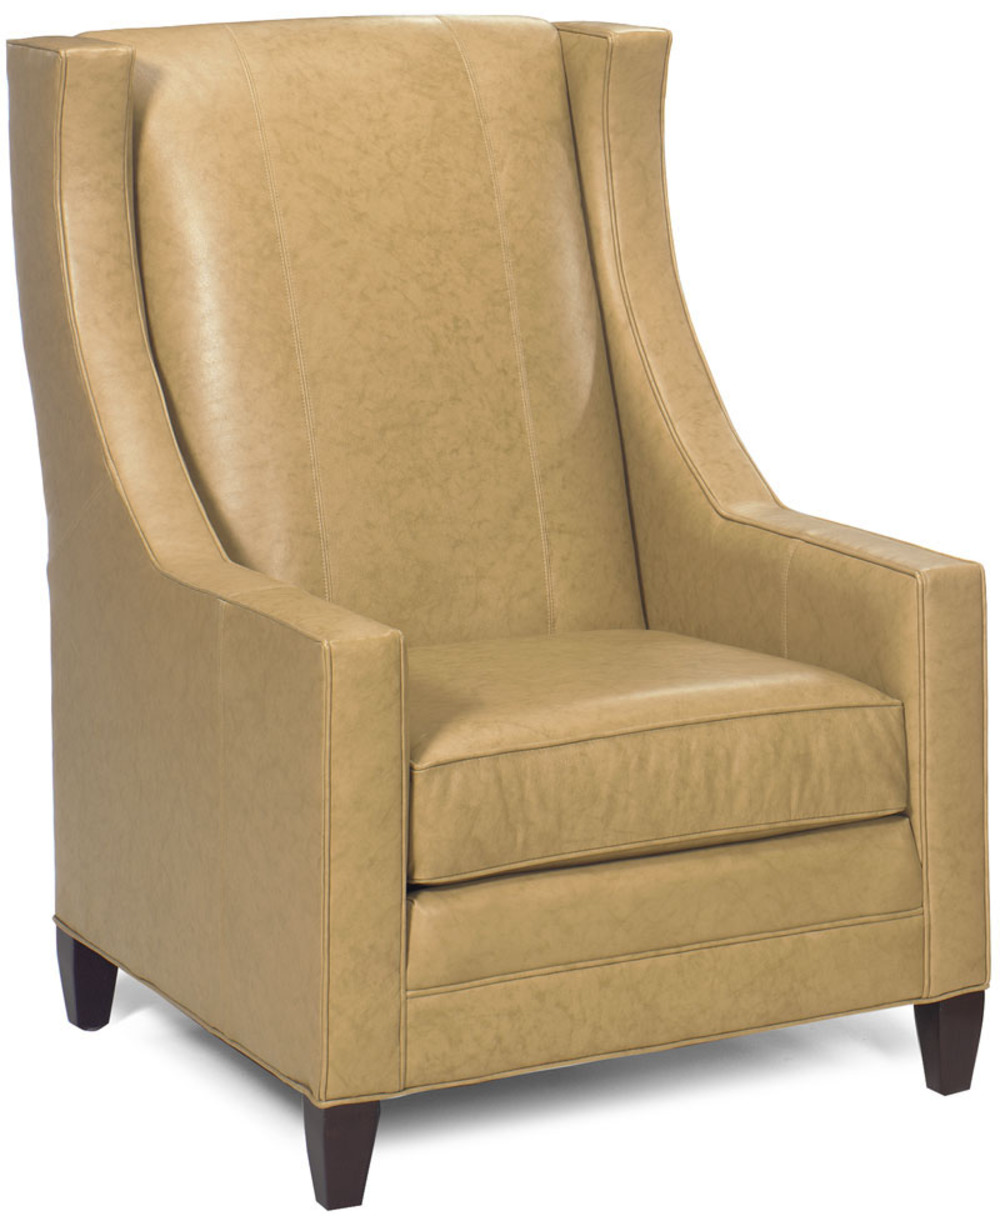 Temple Furniture - Spencer Chair